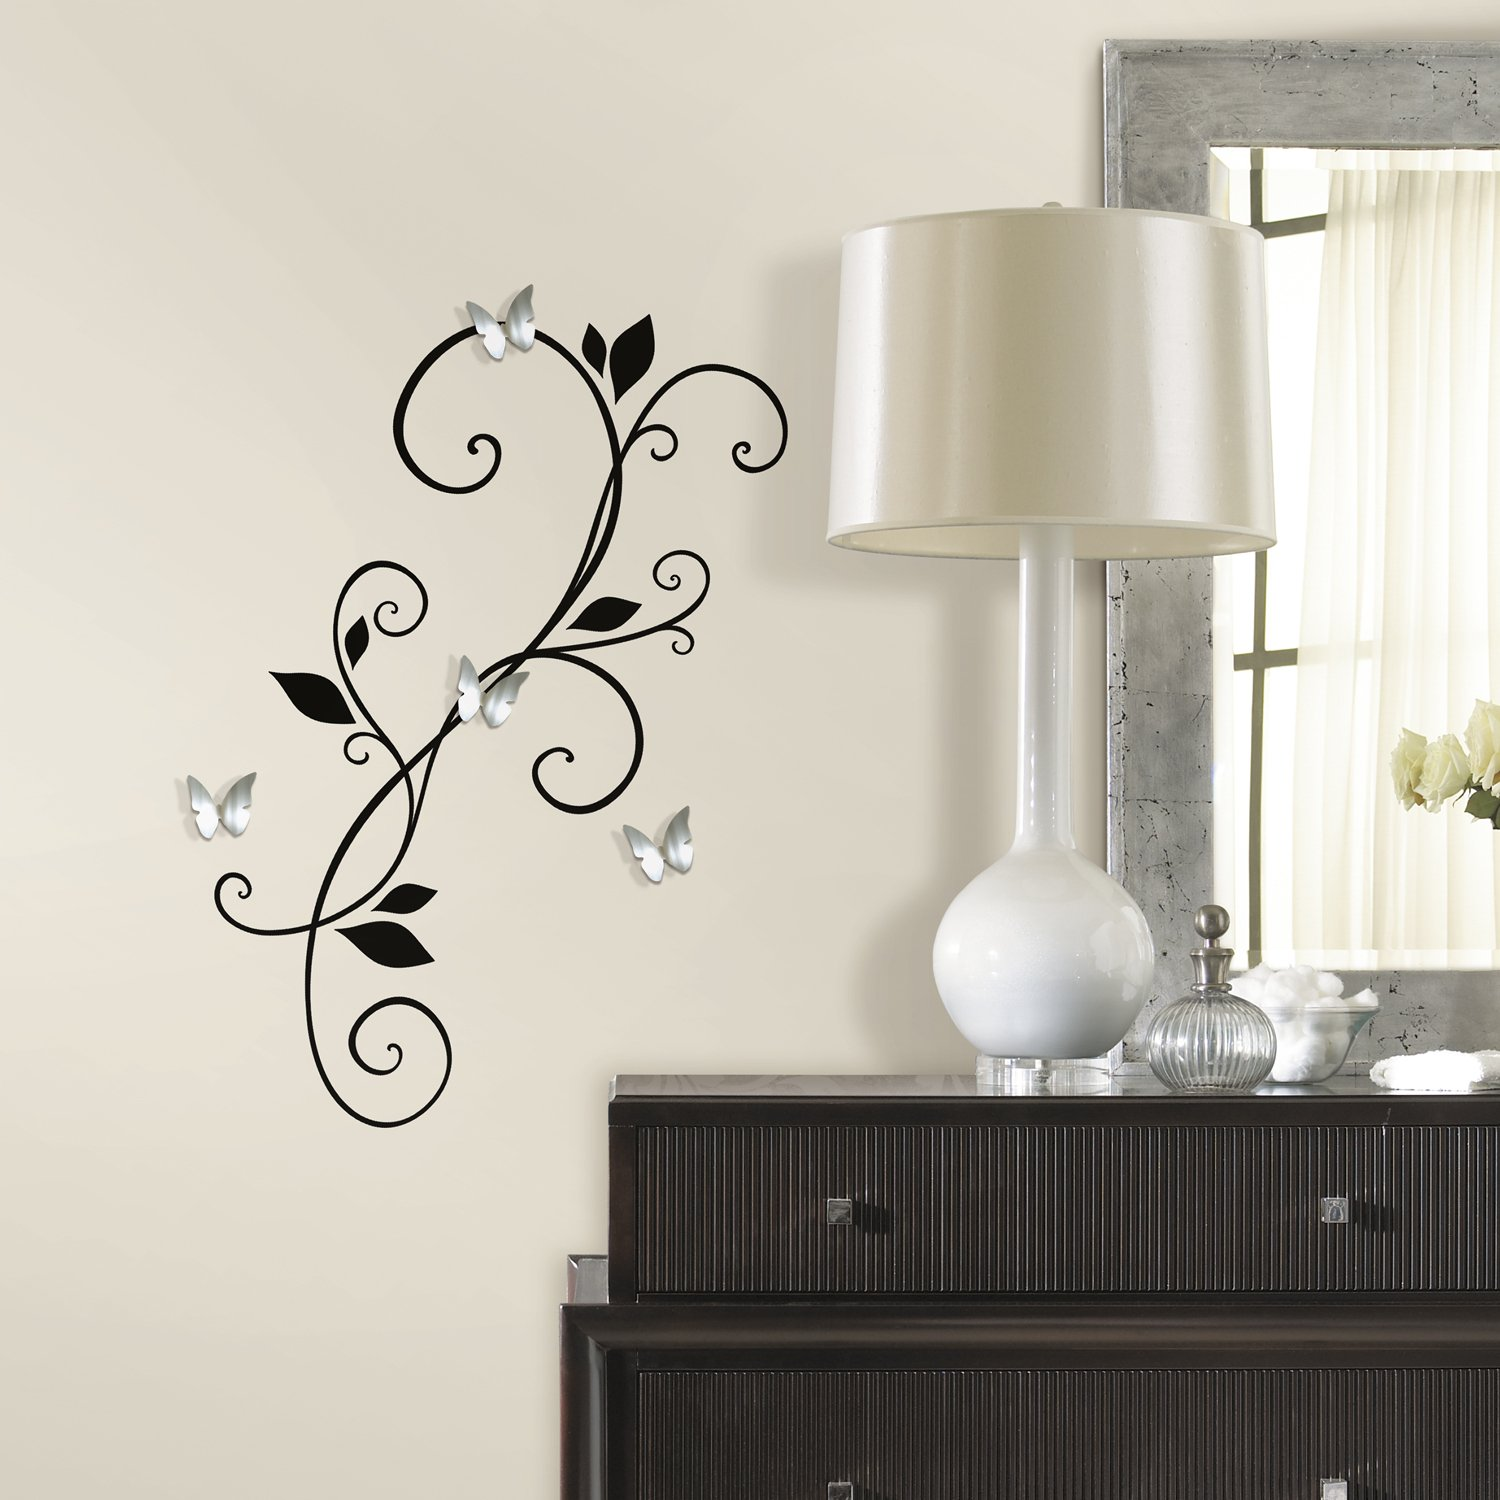 Roommates rmk2689scs scroll sconce peel and stick wall decals with roommates rmk2689scs scroll sconce peel and stick wall decals with bendable butterfly mirrors amazon amipublicfo Gallery